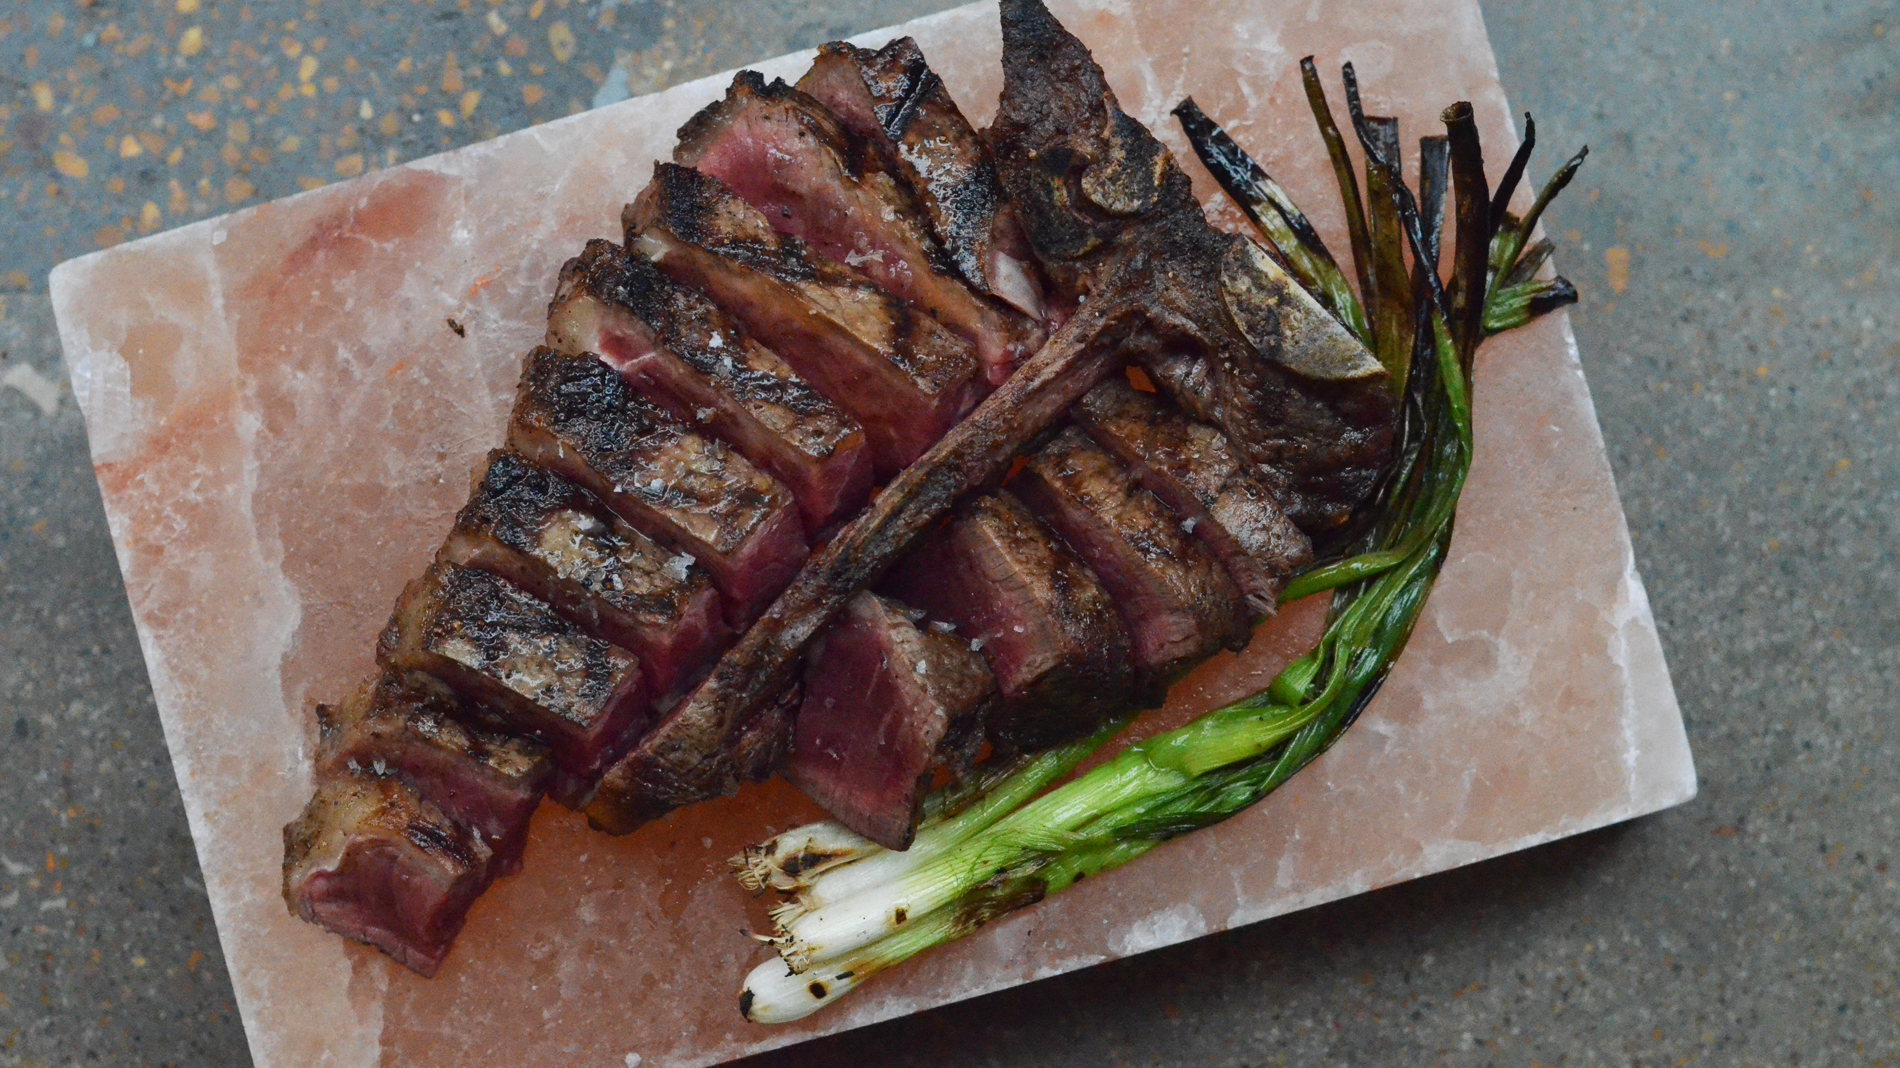 a bone-in porterhouse steak sliced up atop a pink salt block with grilled green onions